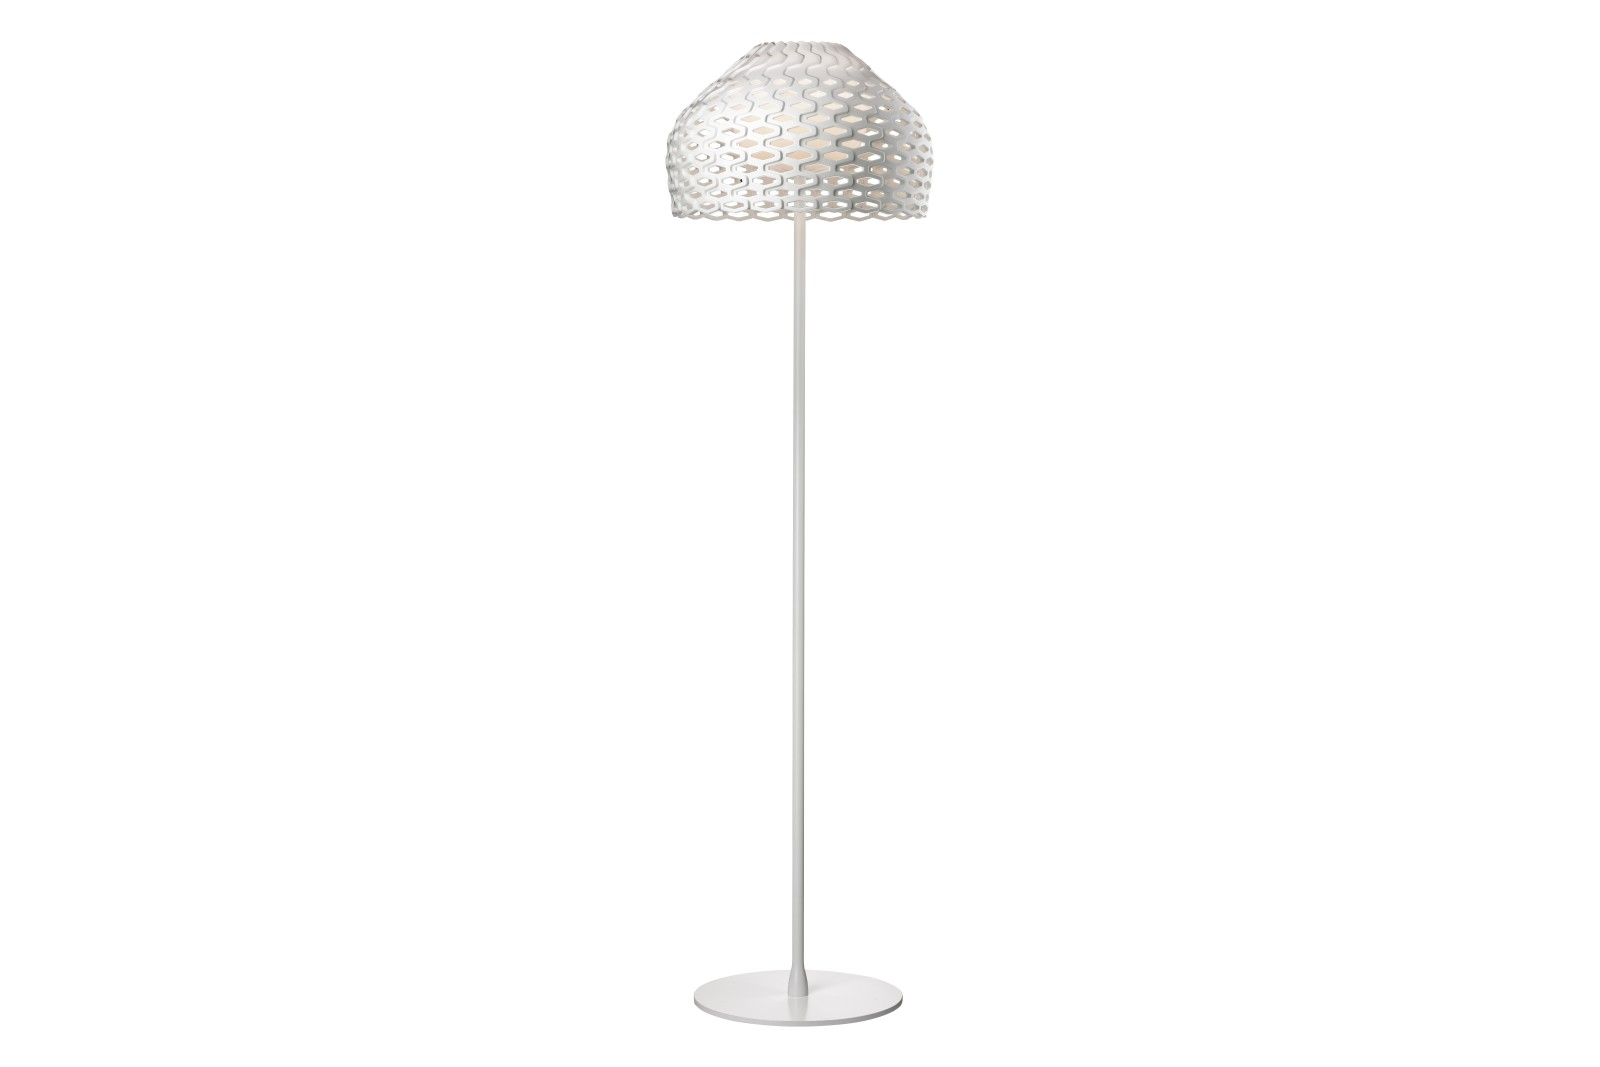 Tatou F Floor Lamp White